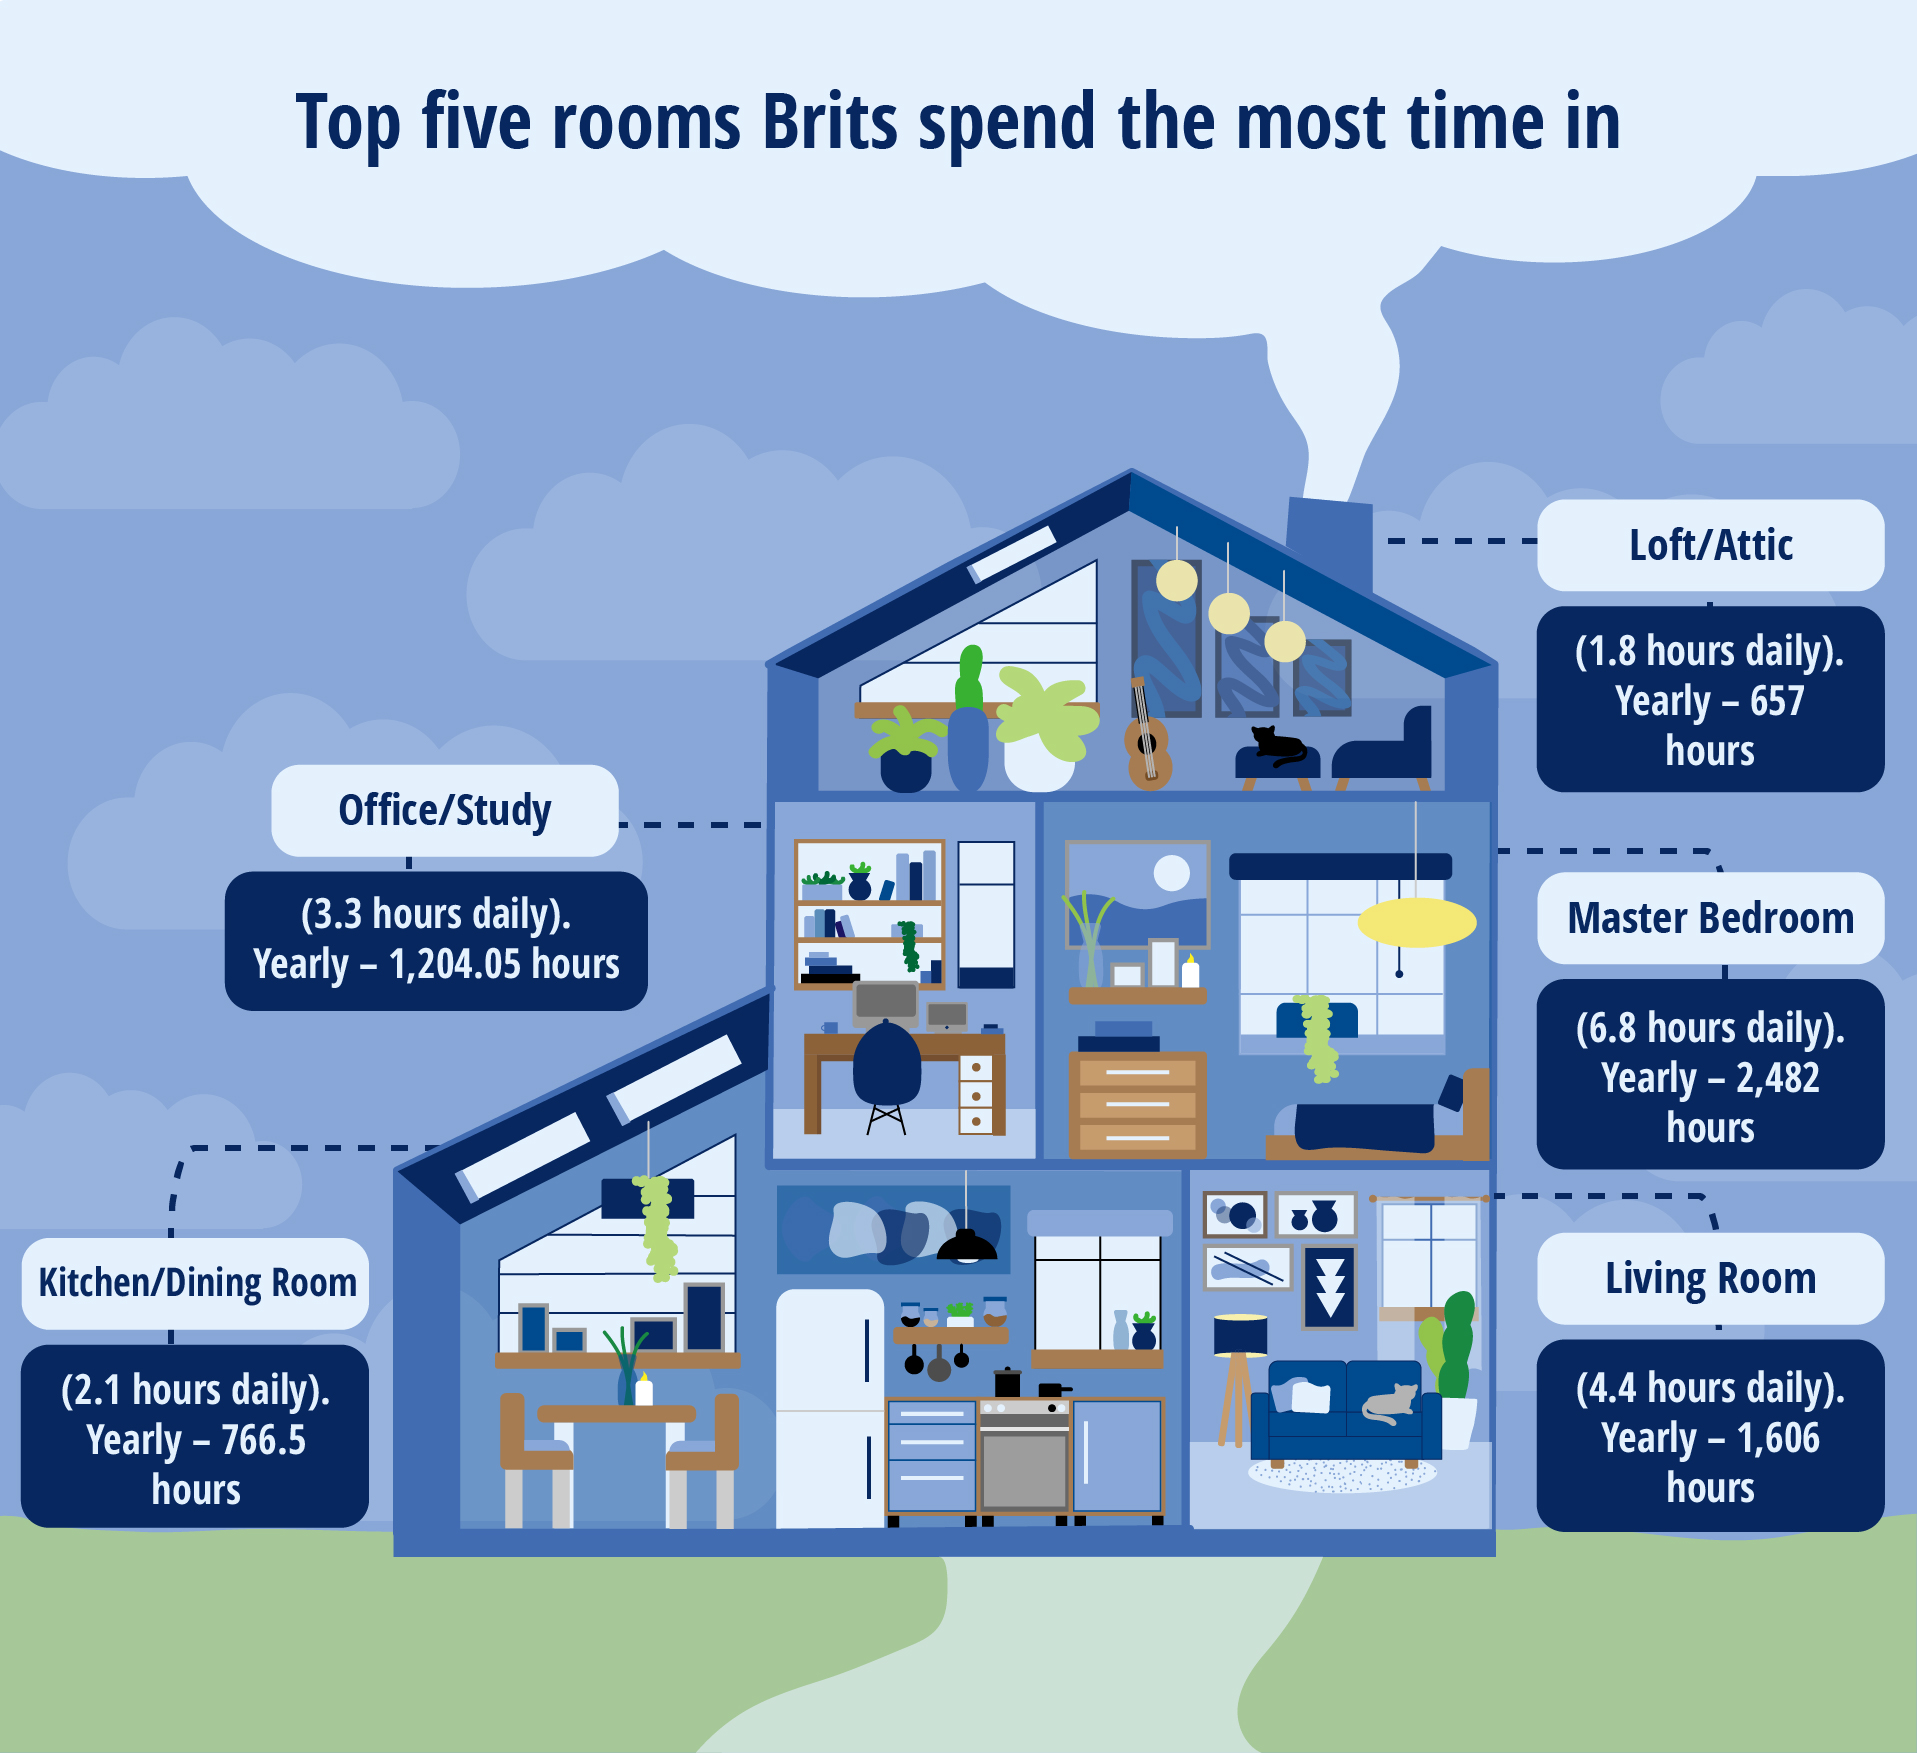 An infographic t show the top five rooms Brits spend the most time in.